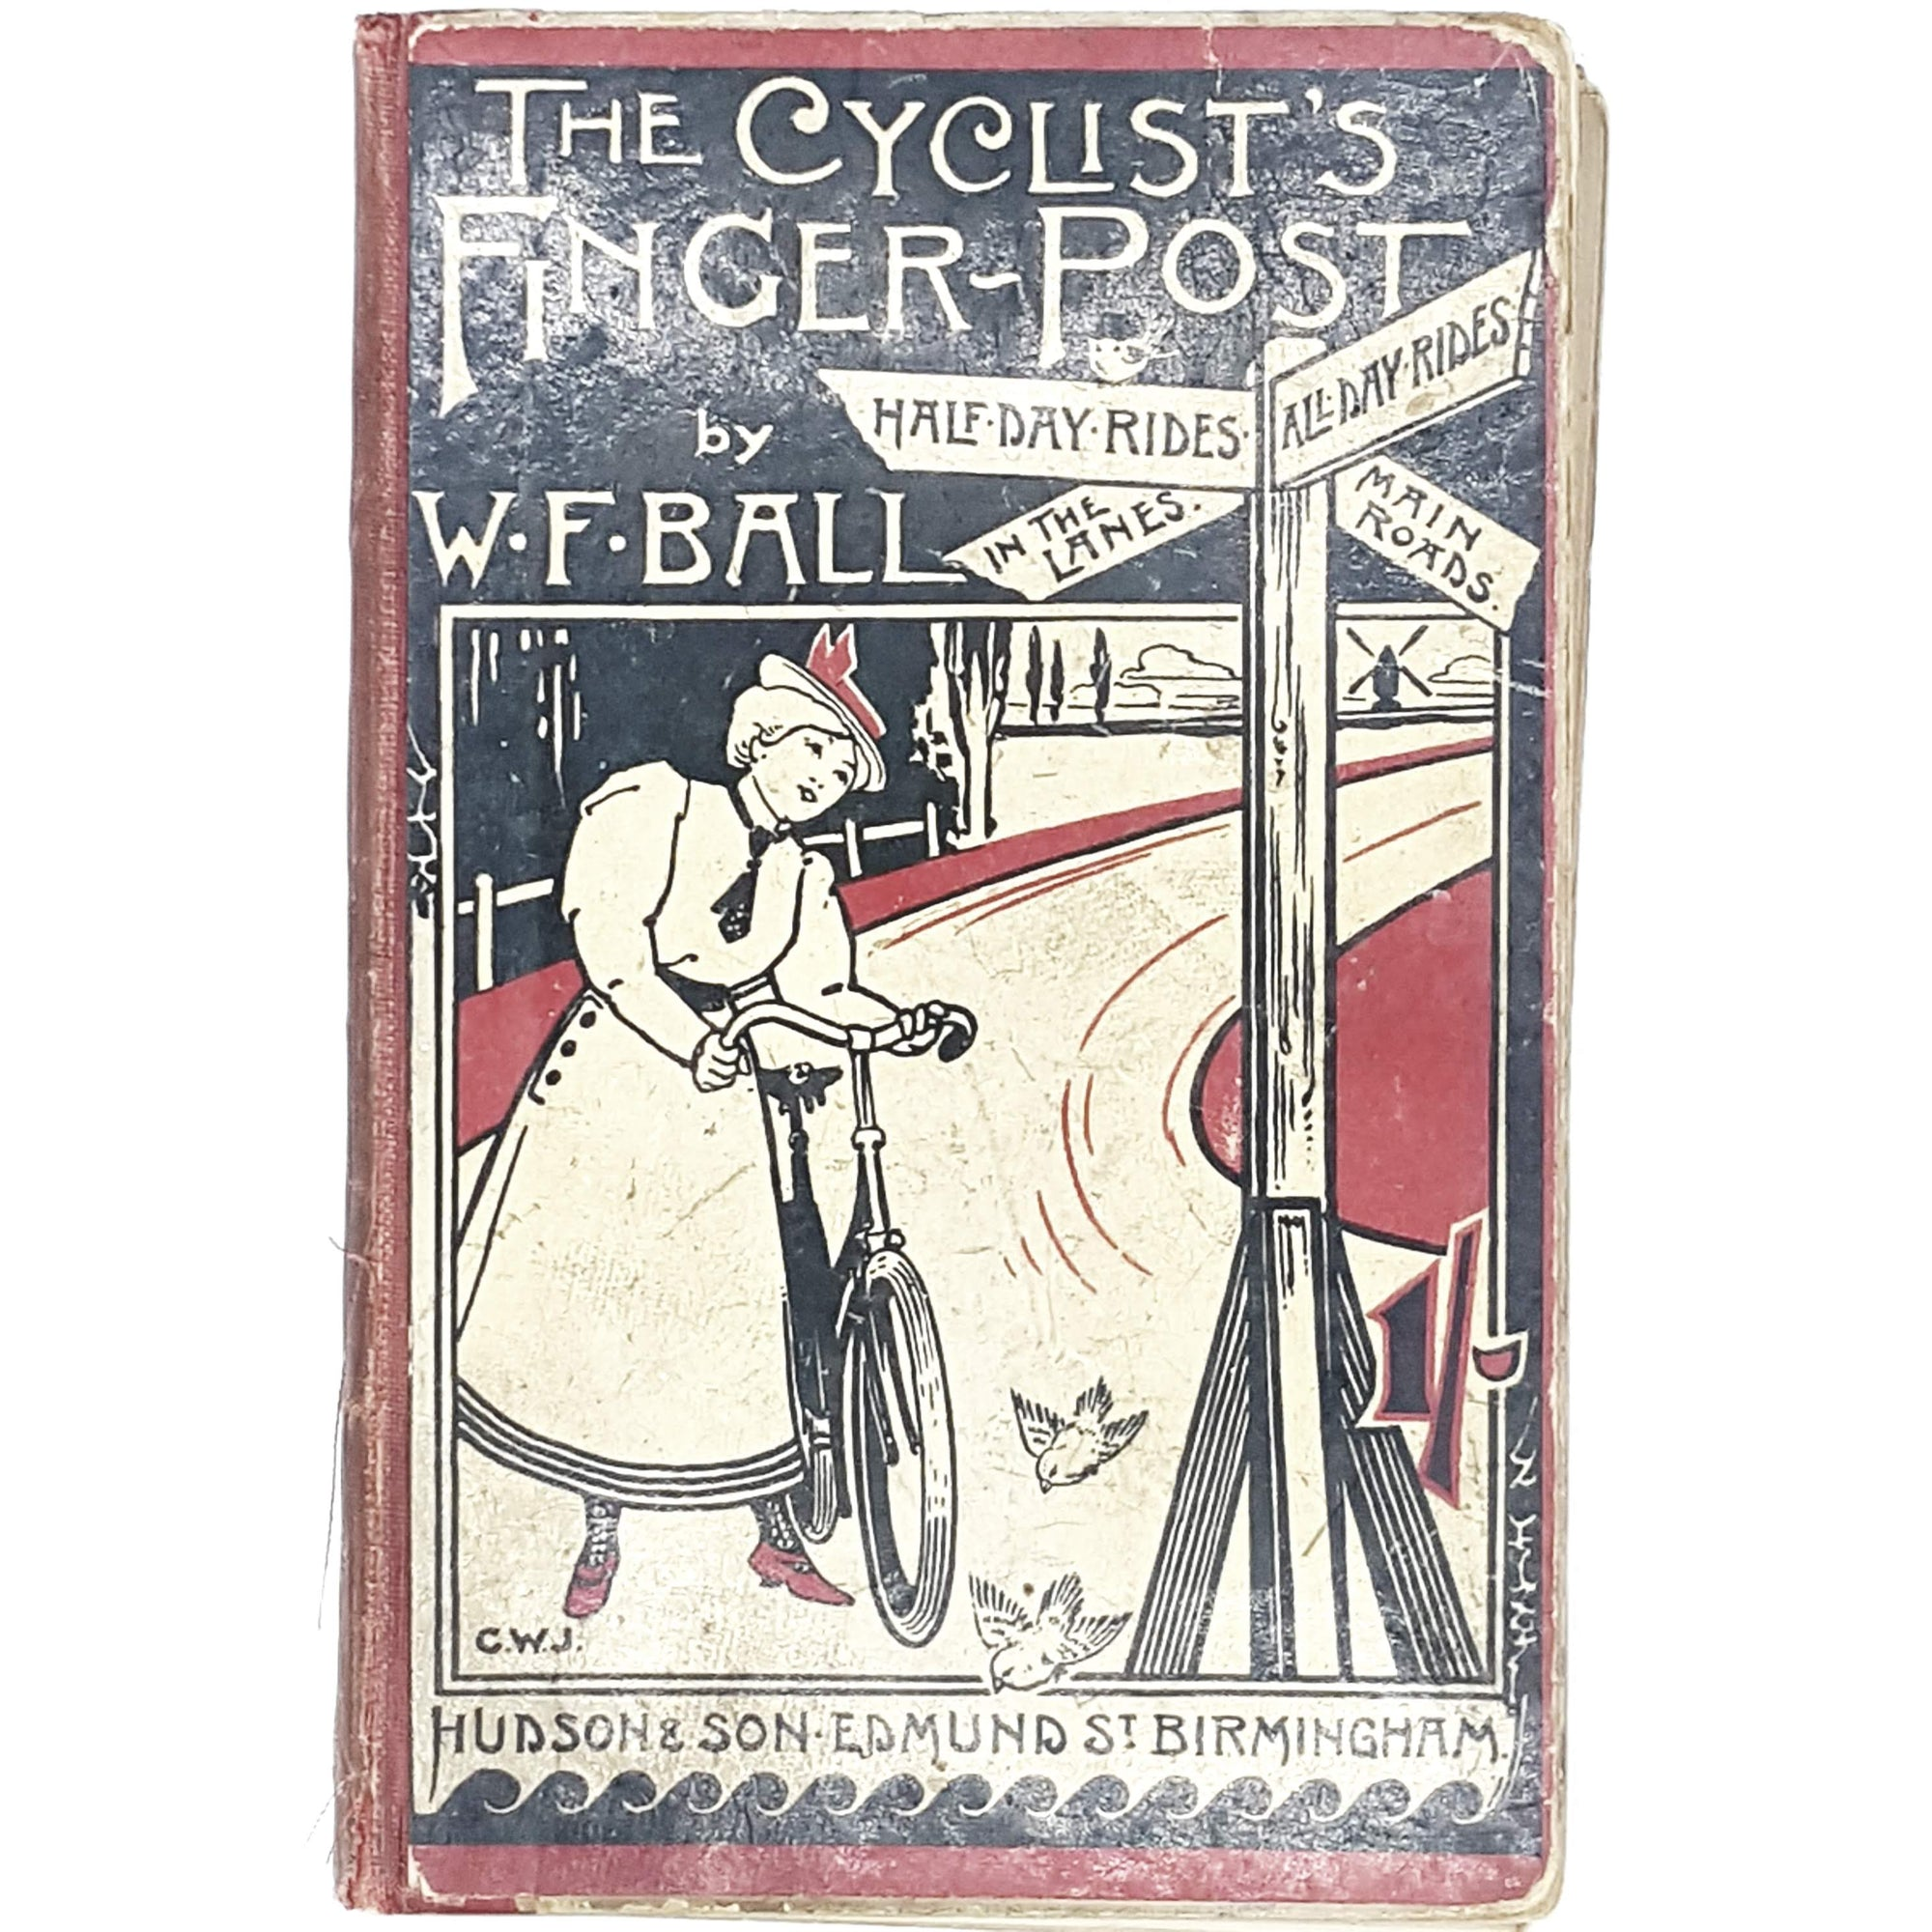 Illustrated The Cyclist's Finger-Post 1899